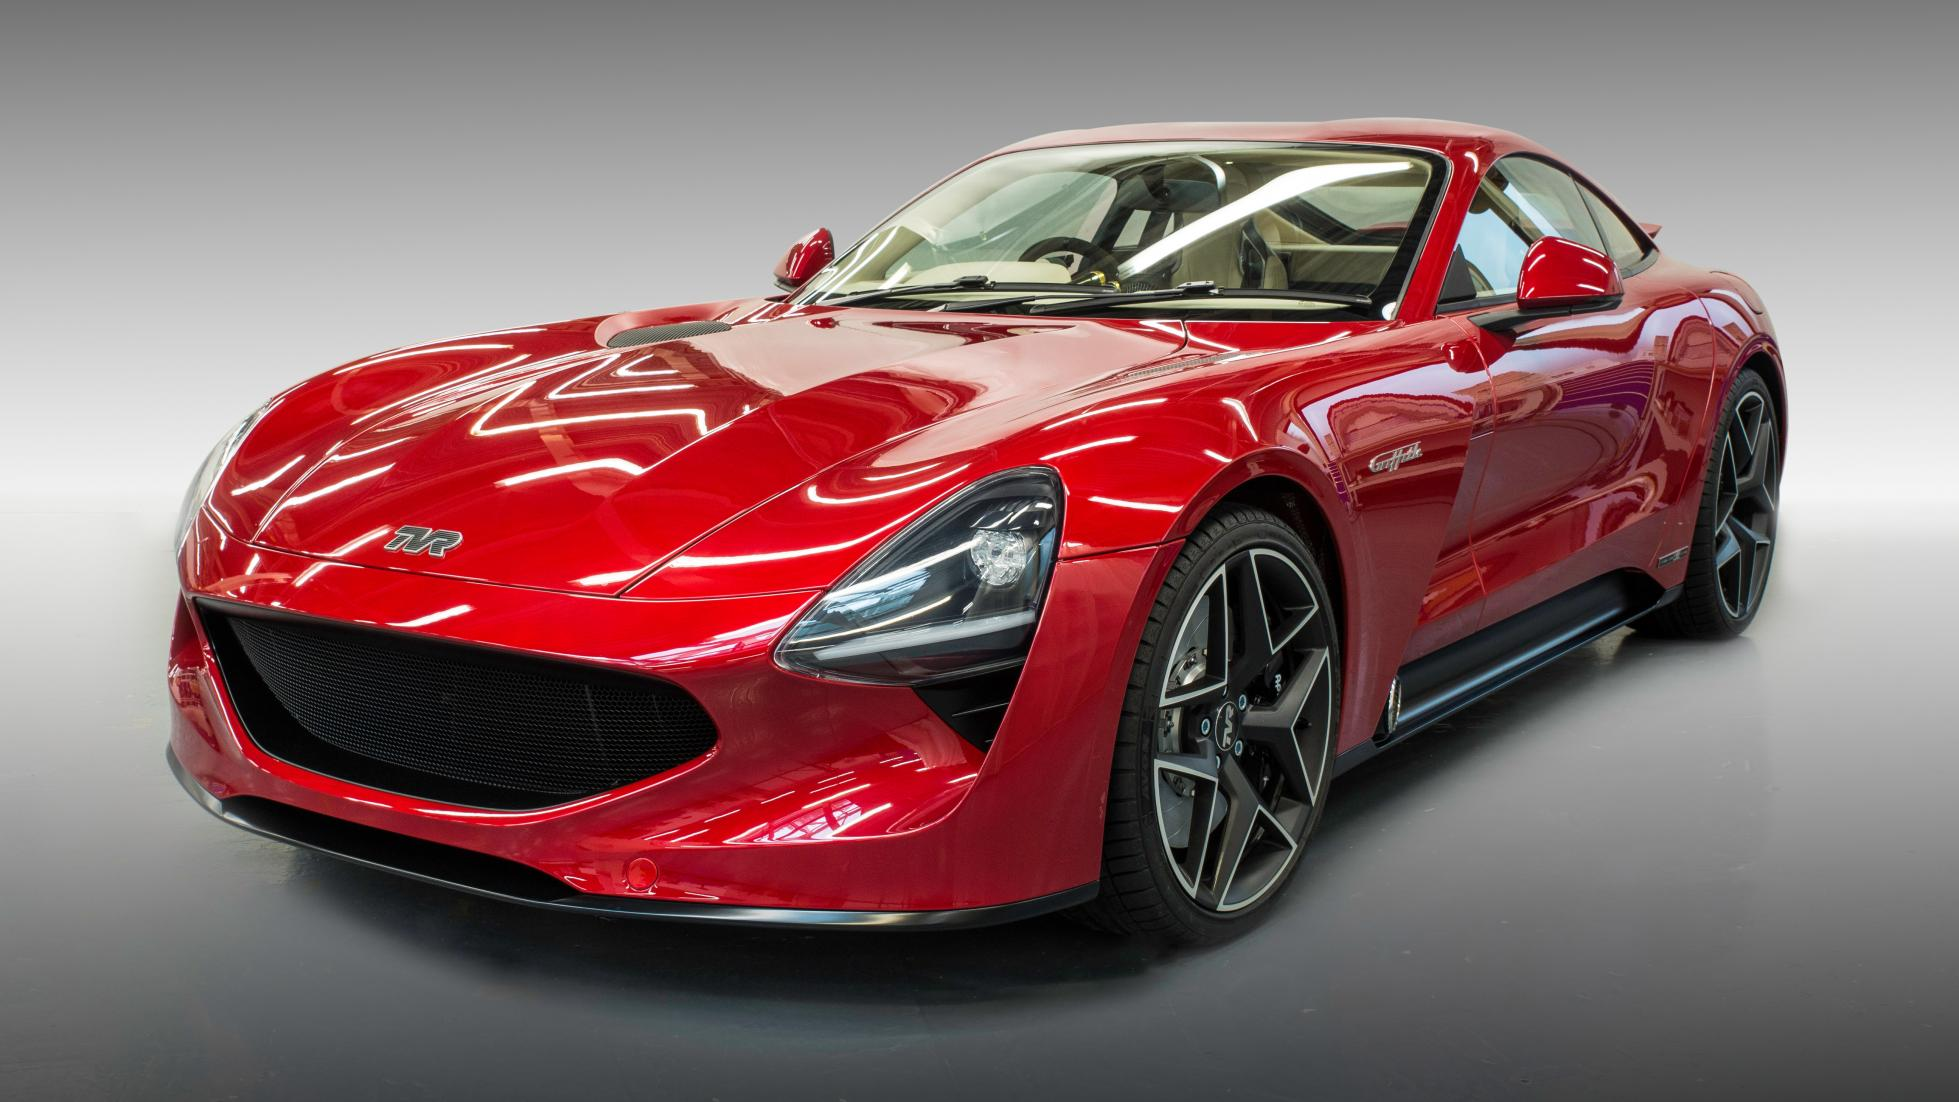 TVR is back! Meet the brand new Griffith